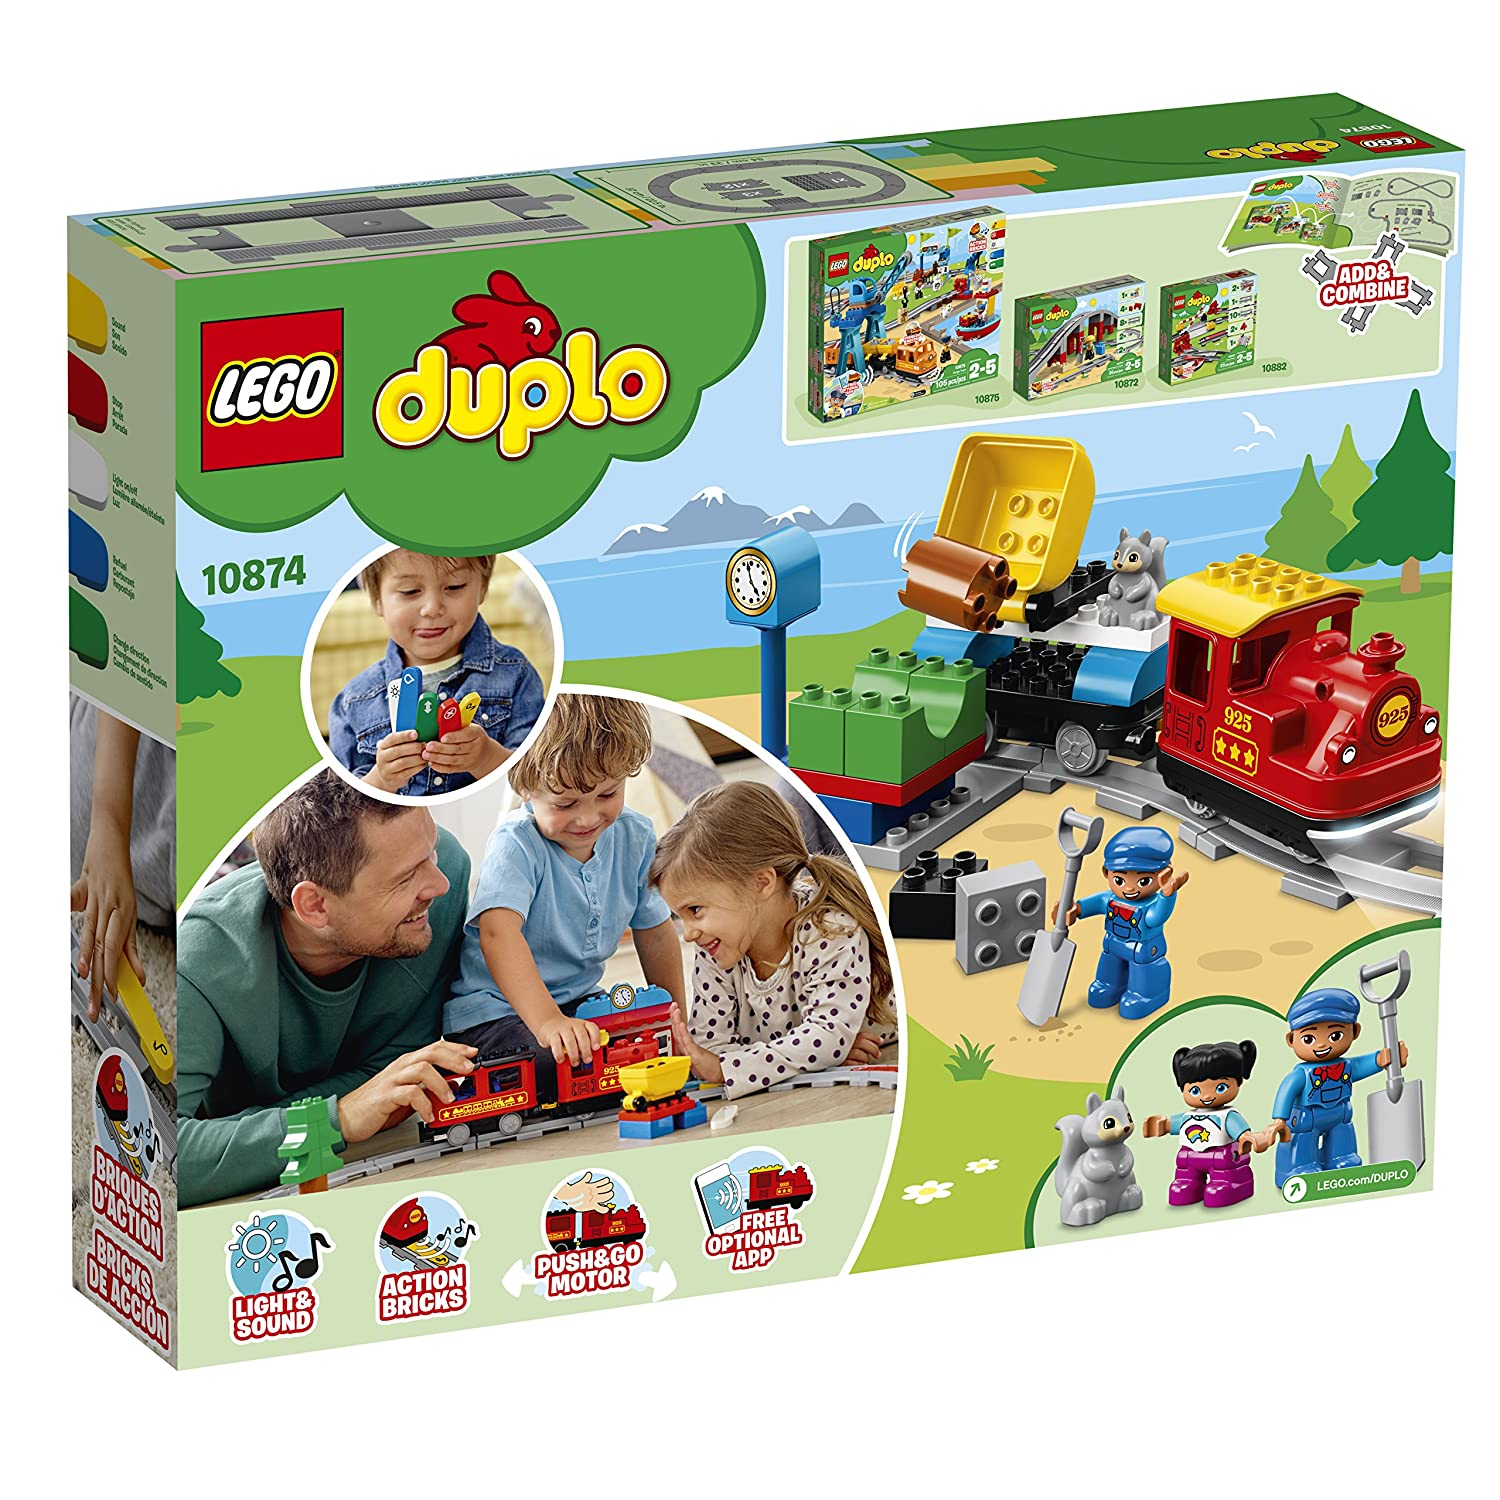 59 Pieces LEGO DUPLO Steam Train 10874 Remote-Control Building Blocks Set  Helps Toddlers Learn Great Educational Birthday Gift